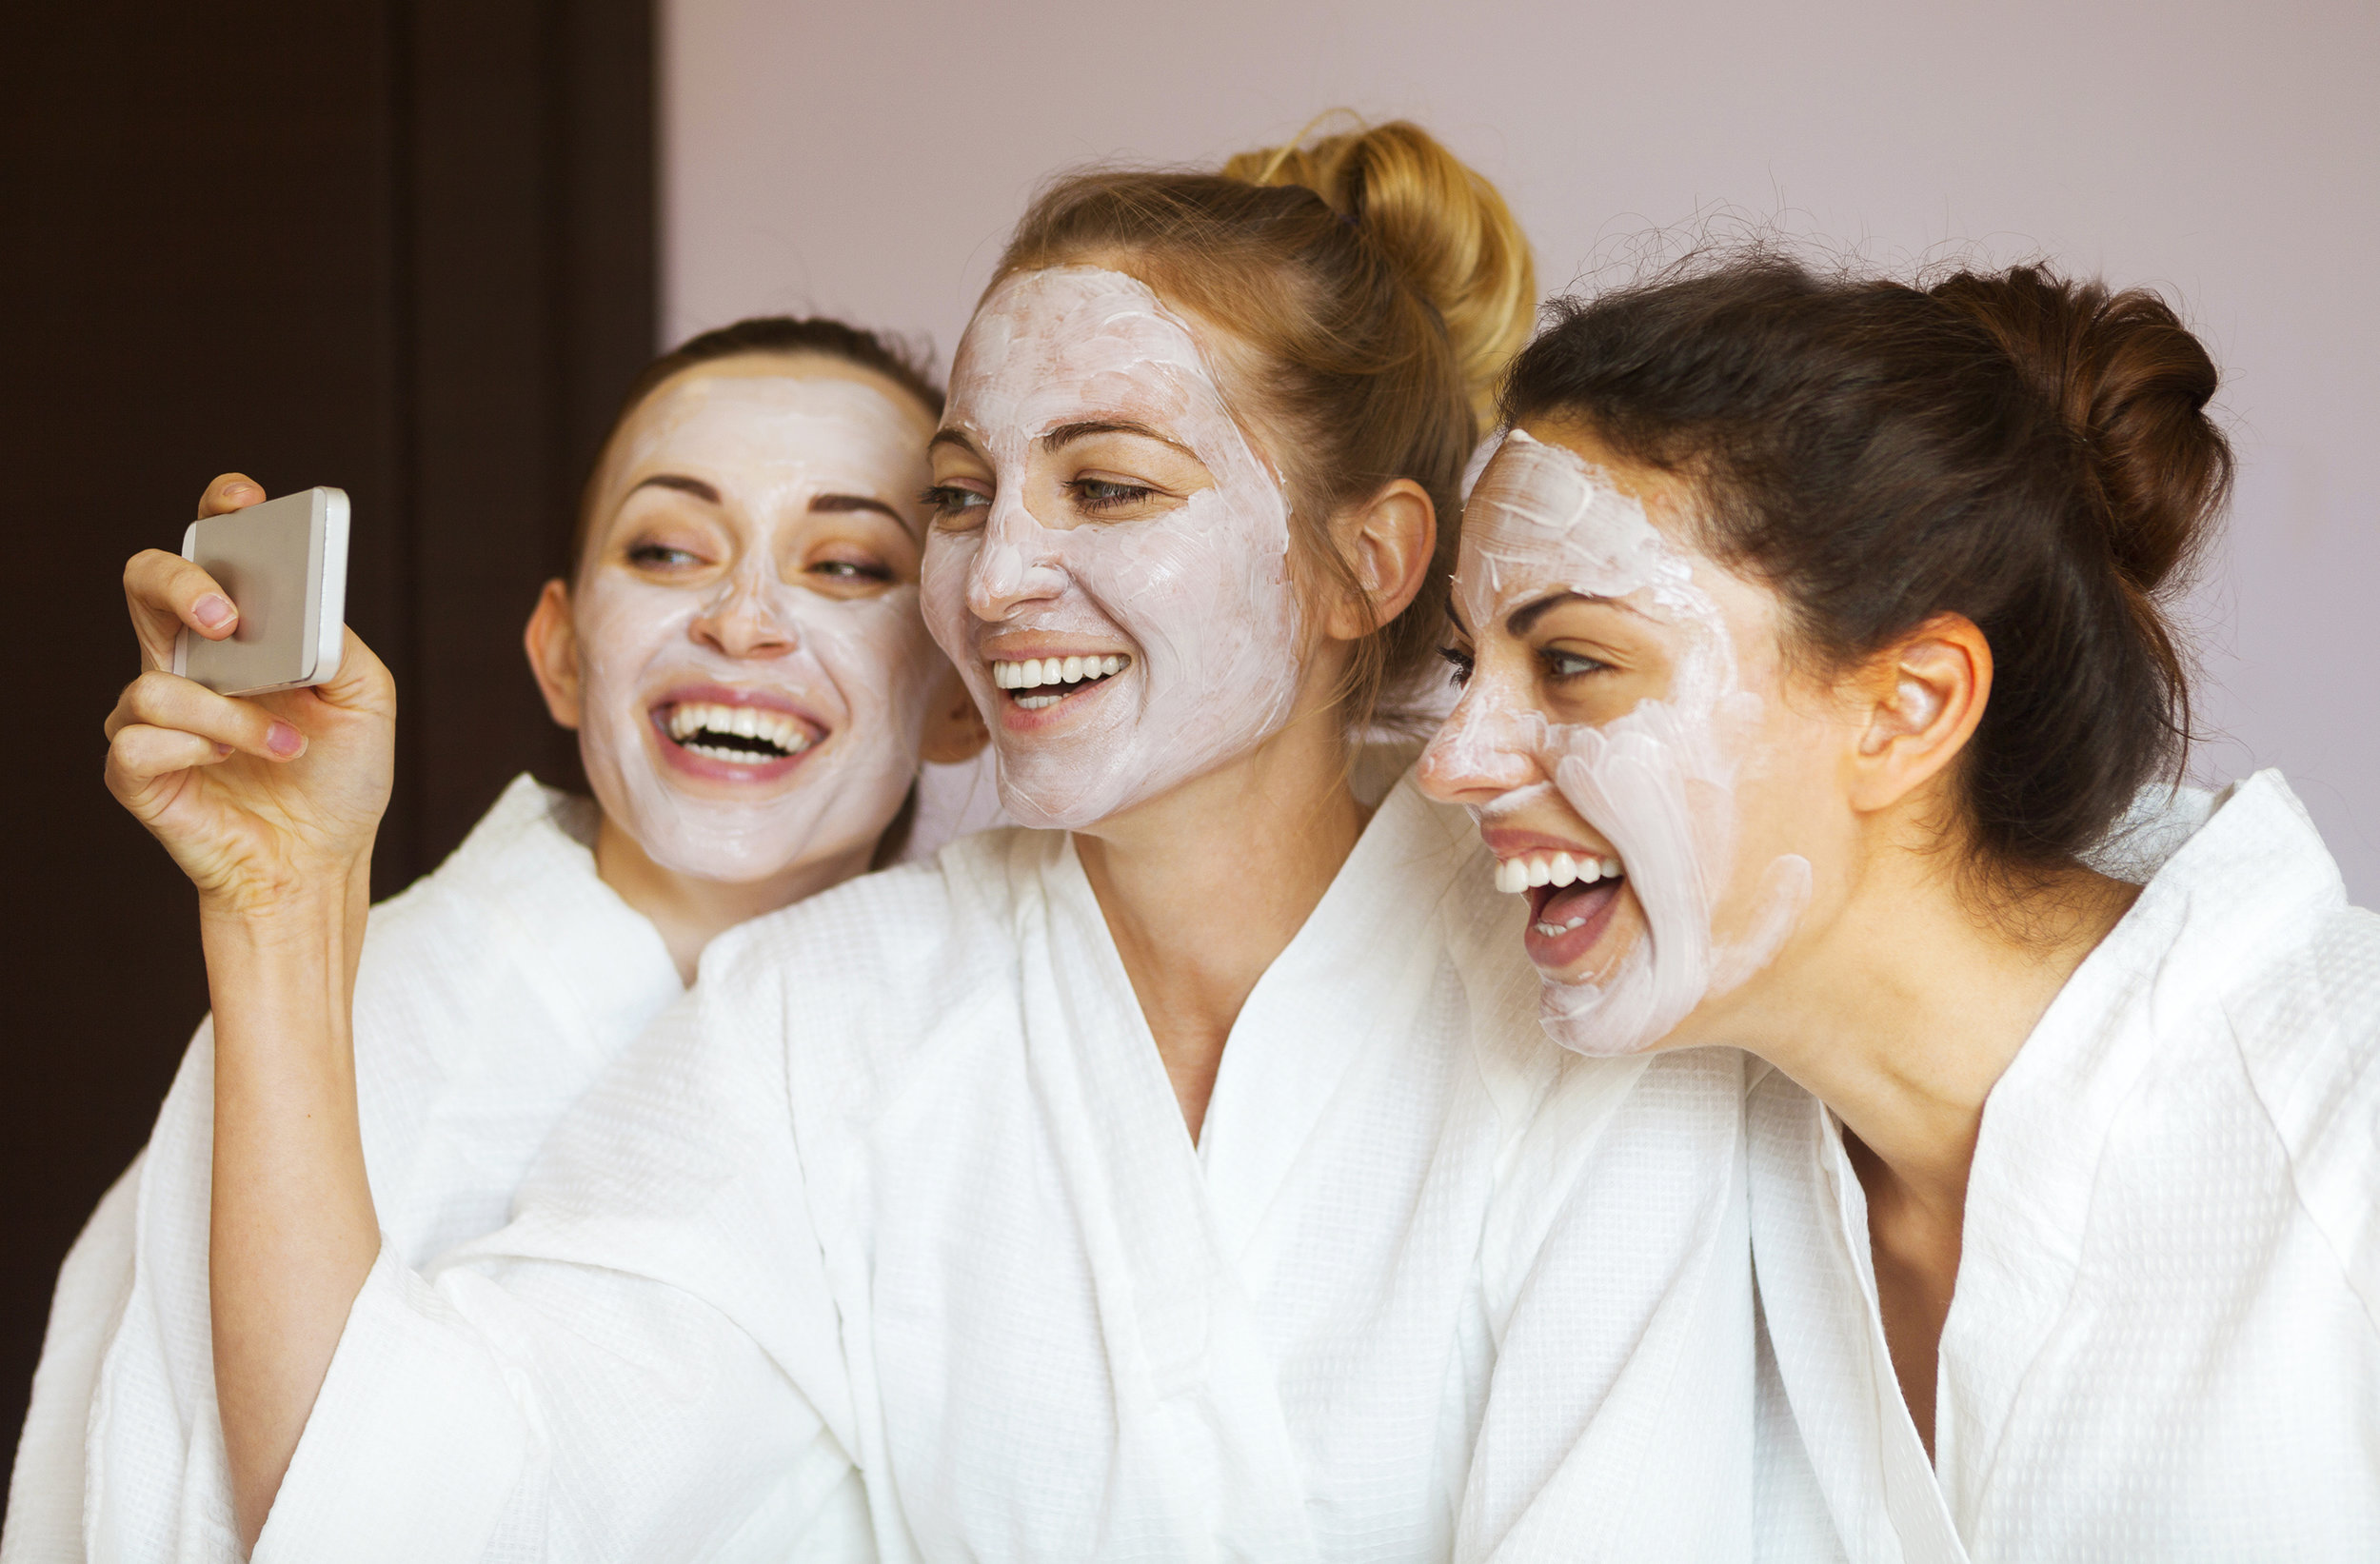 HOST A PARTY! - Looking for the way to celebrate that special occasion with your friends, family or co-workers? We've got you covered! Our Party is a gathering of 3 or more guests coordinating facial services together. Whether it's a special occasion or